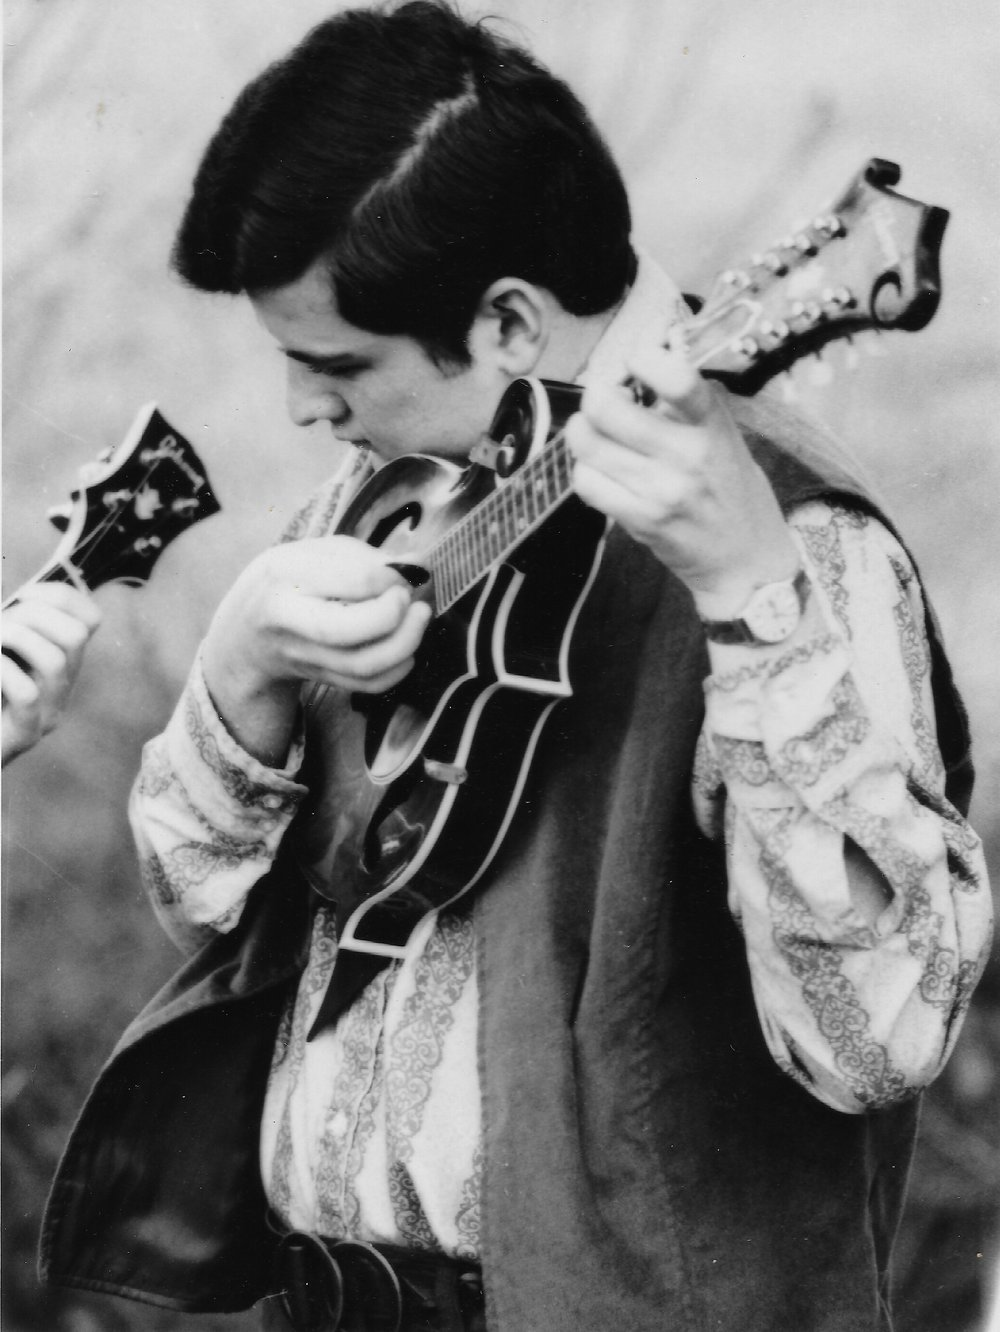 Tony Williamson and his mandolin in 1972.